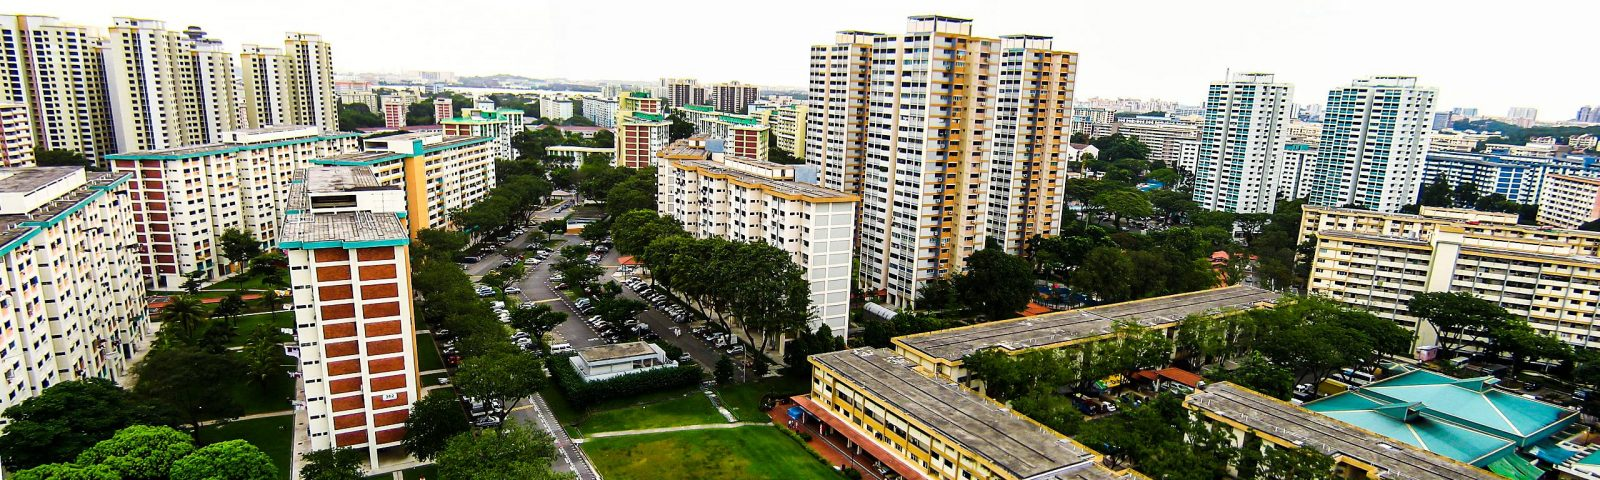 district 21 cluster housing